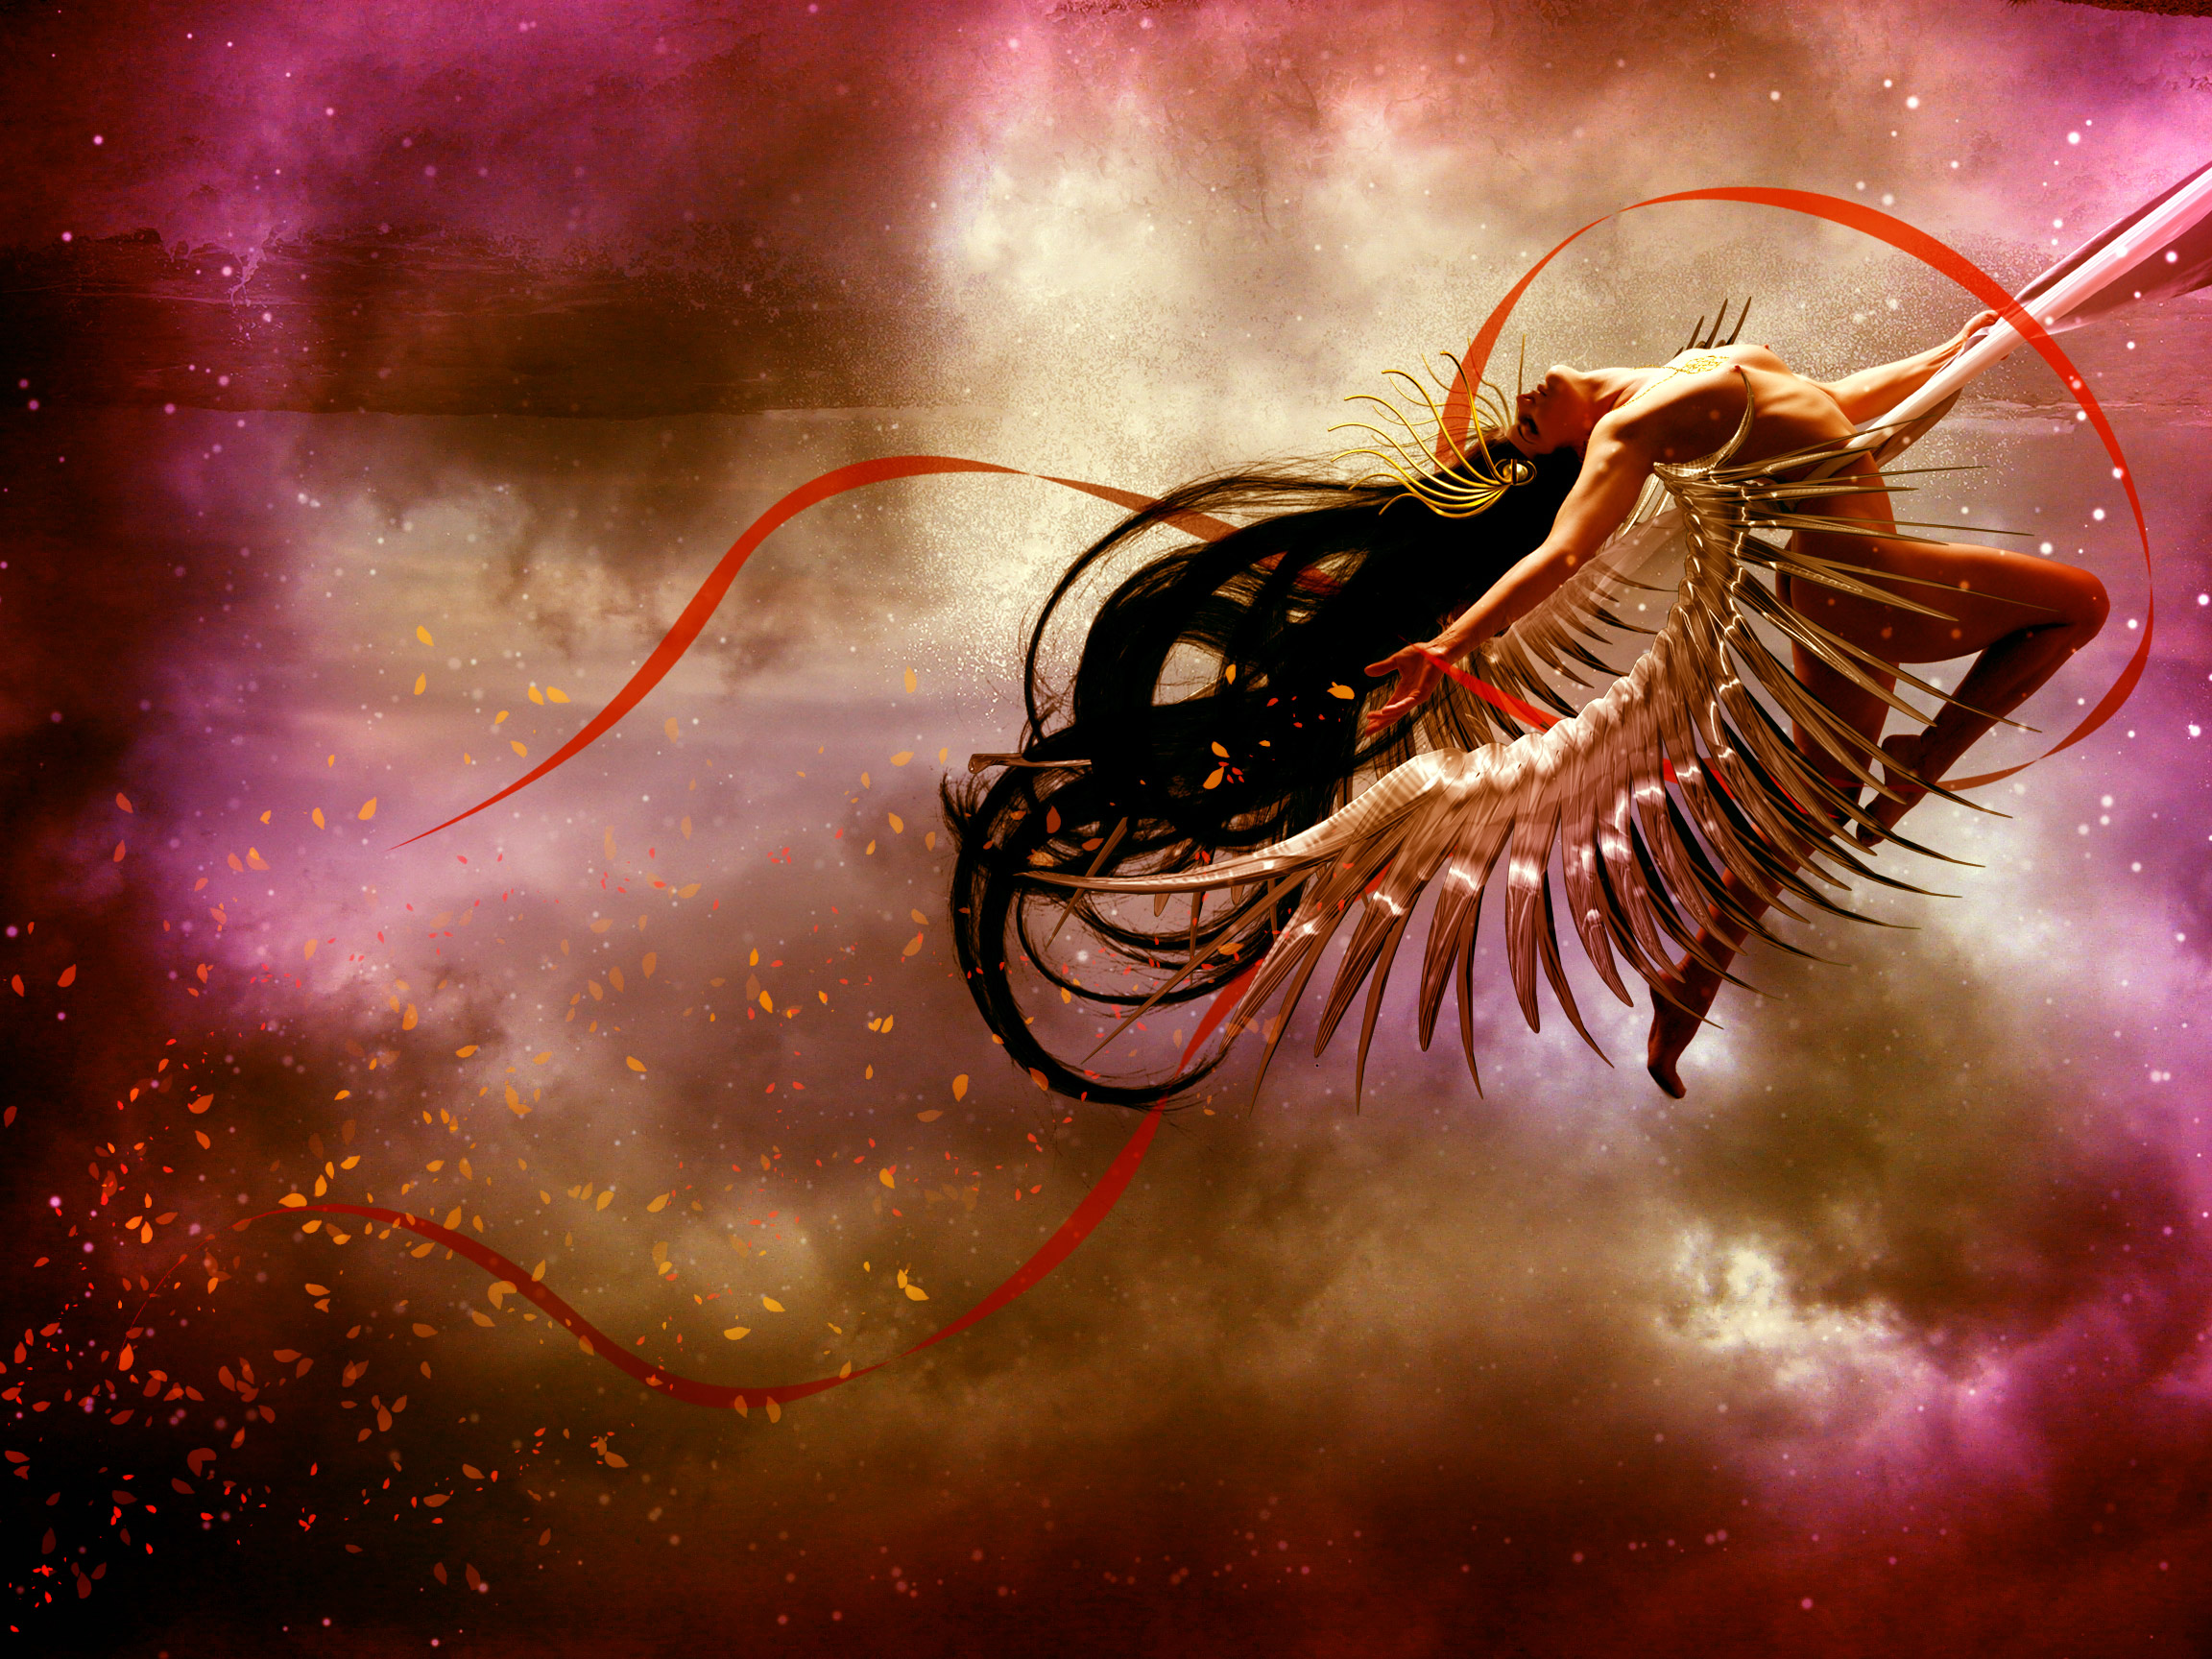 A cosmic love goddess with photoshop cs5 final image baditri Images